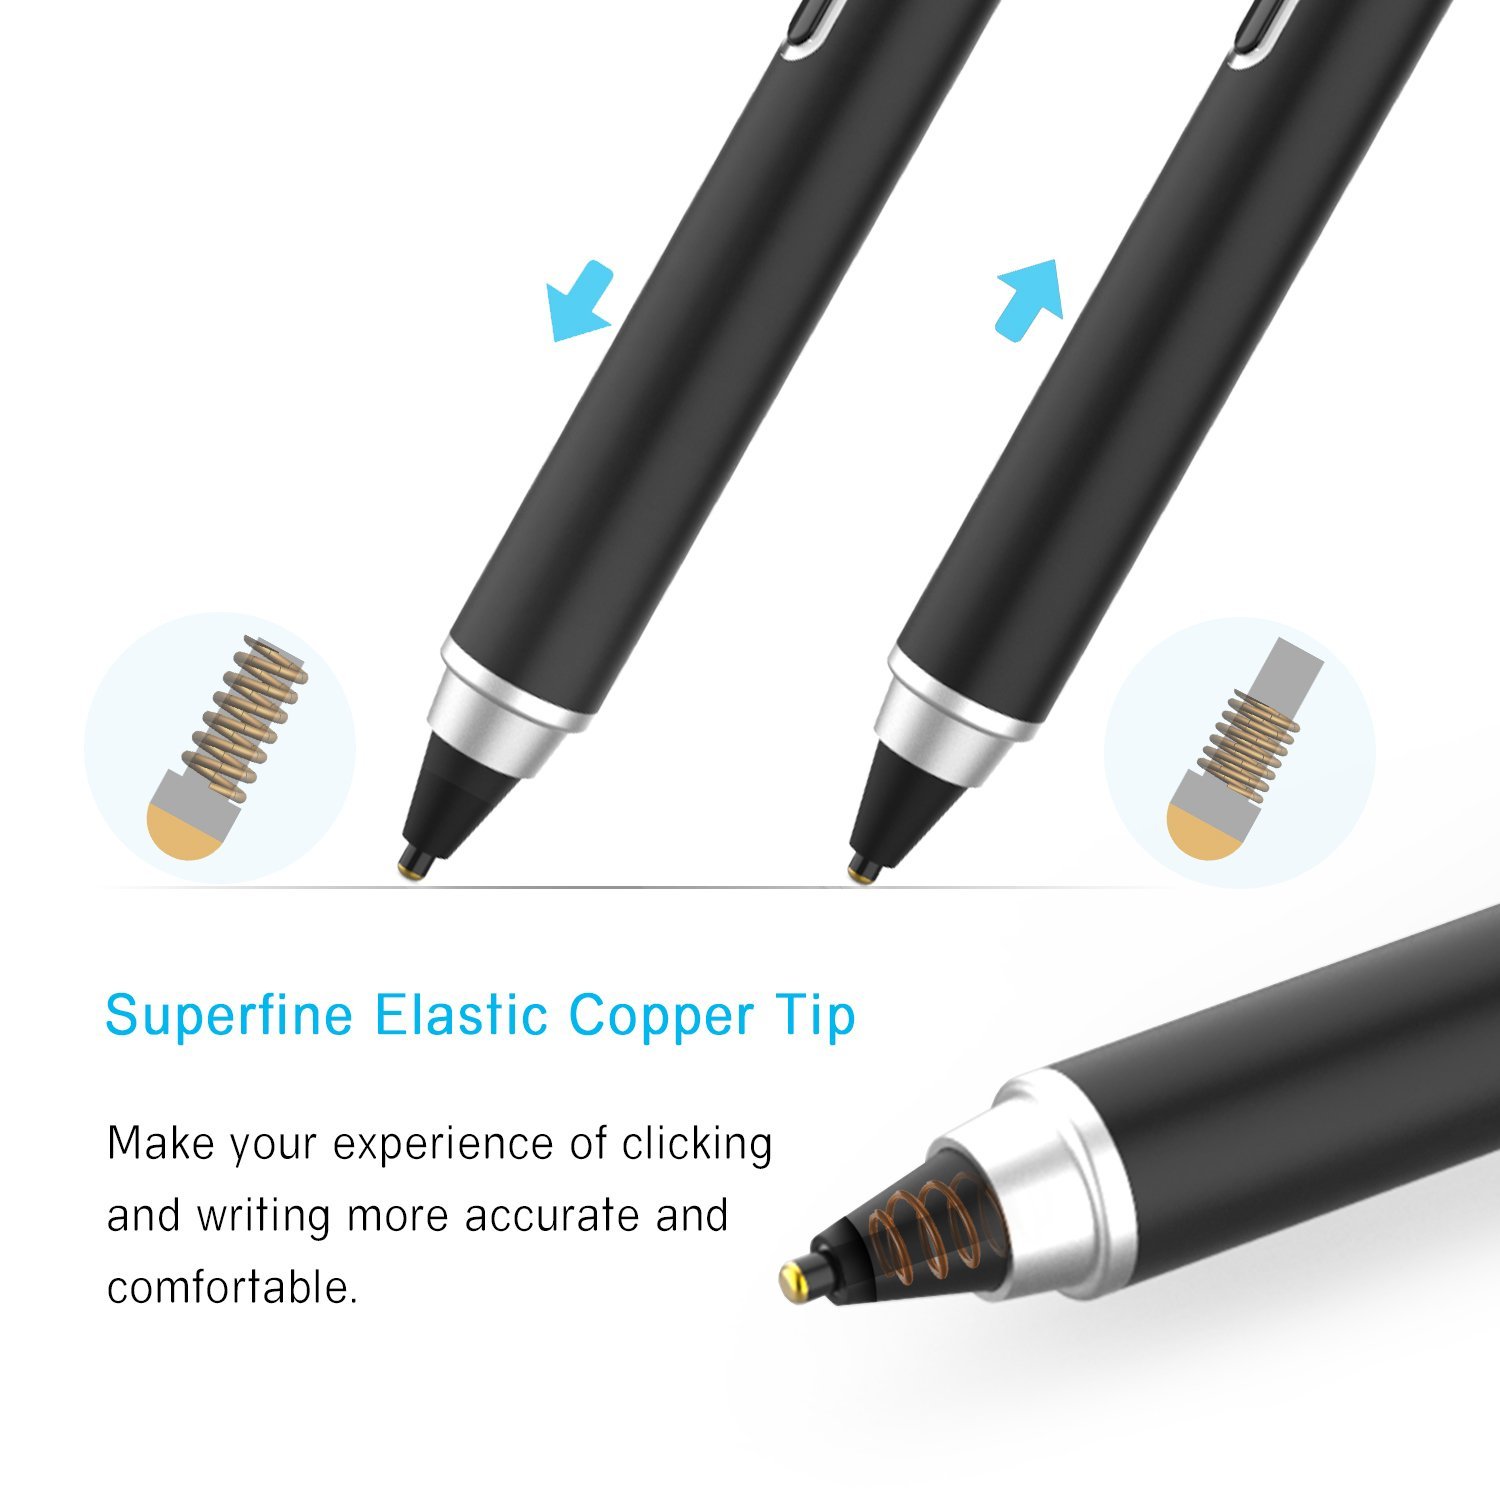 Active Stylus Pen, Ciscle Capacitive Digital Pen, 5 Mins Auto Power Off with High Precision Sensitivity 1.5mm Copper Tip, Fine Point Stylus for Touch Screen Devices, iPad/iPhone/Android Tablets-Black by Ciscle (Image #4)